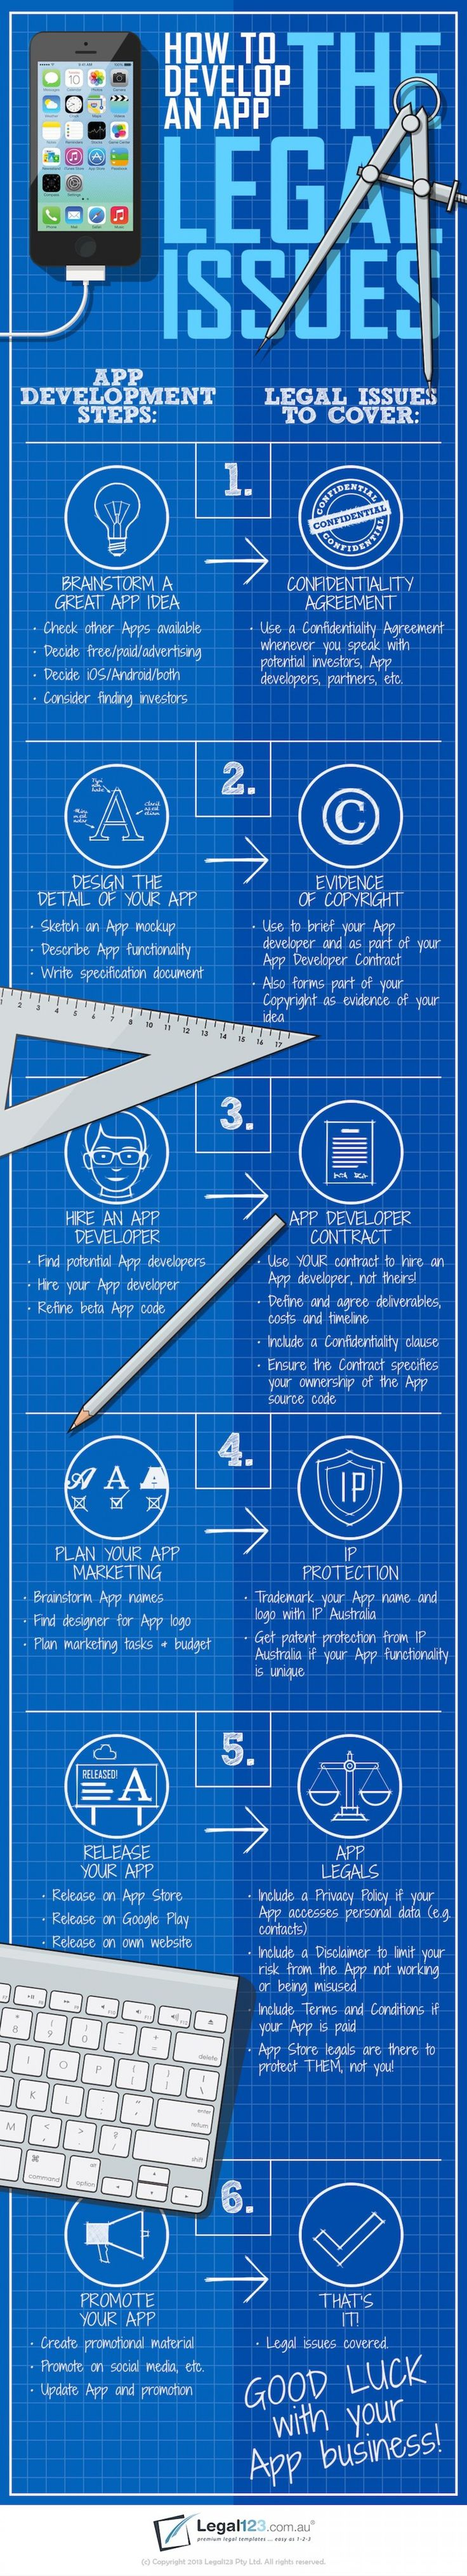 How to Develop an App: The Legal Issues Latest News & Trends on #webdesign and #webdevelopment | http://webworksagency.com